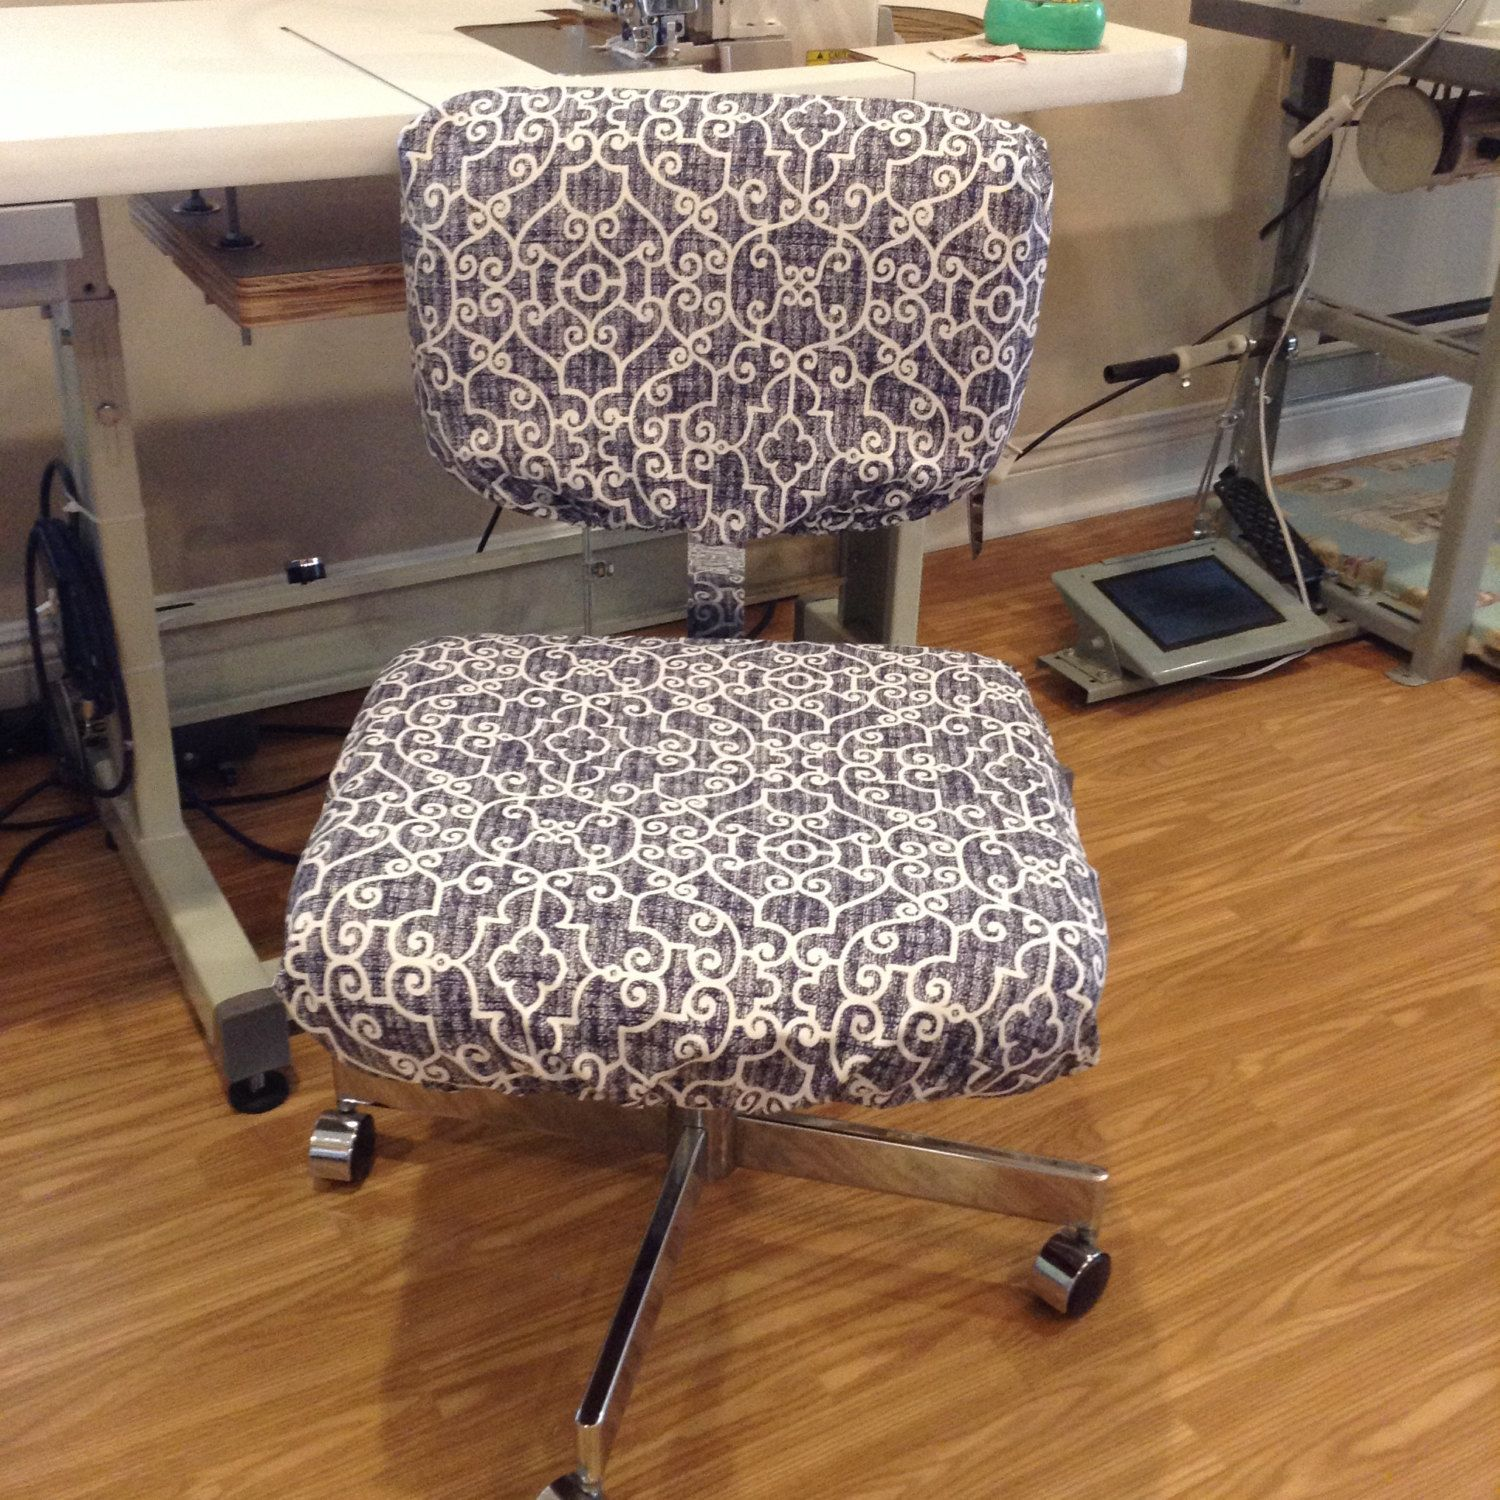 dorm chair covers etsy stakmore folding chairs office seat and back with monogram slipcover elasticized customizable washable removable